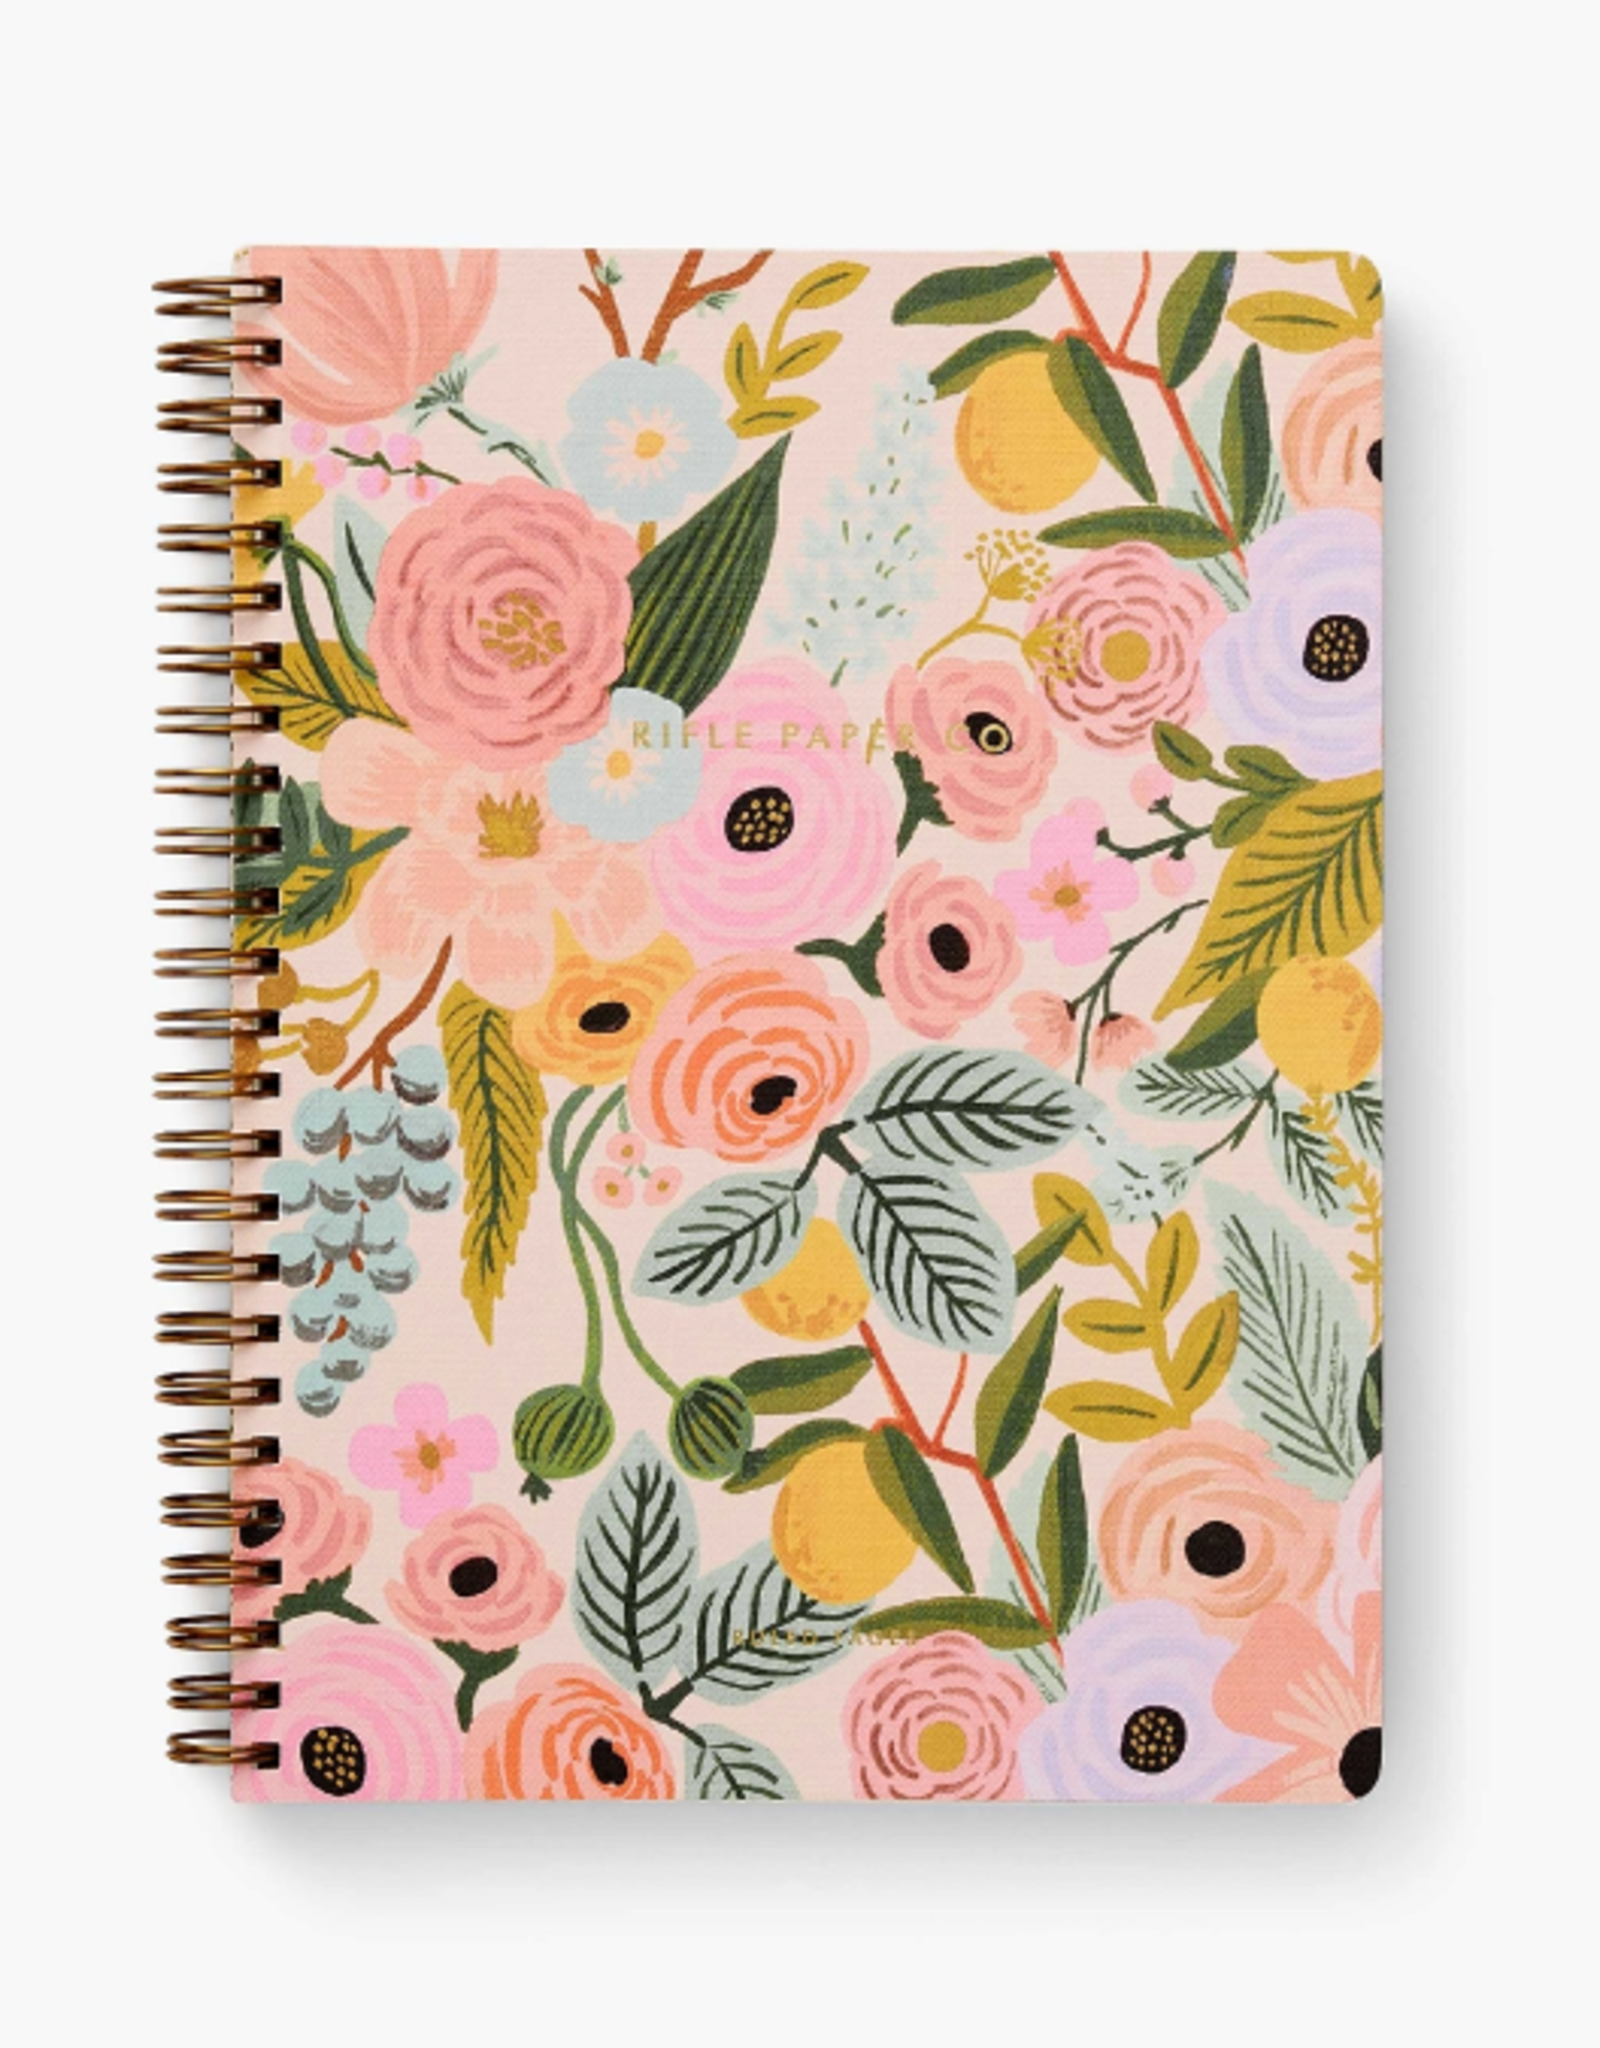 RIFLE PAPER COMPANY NOTEBOOK SPIRAL GARDEN PARTY